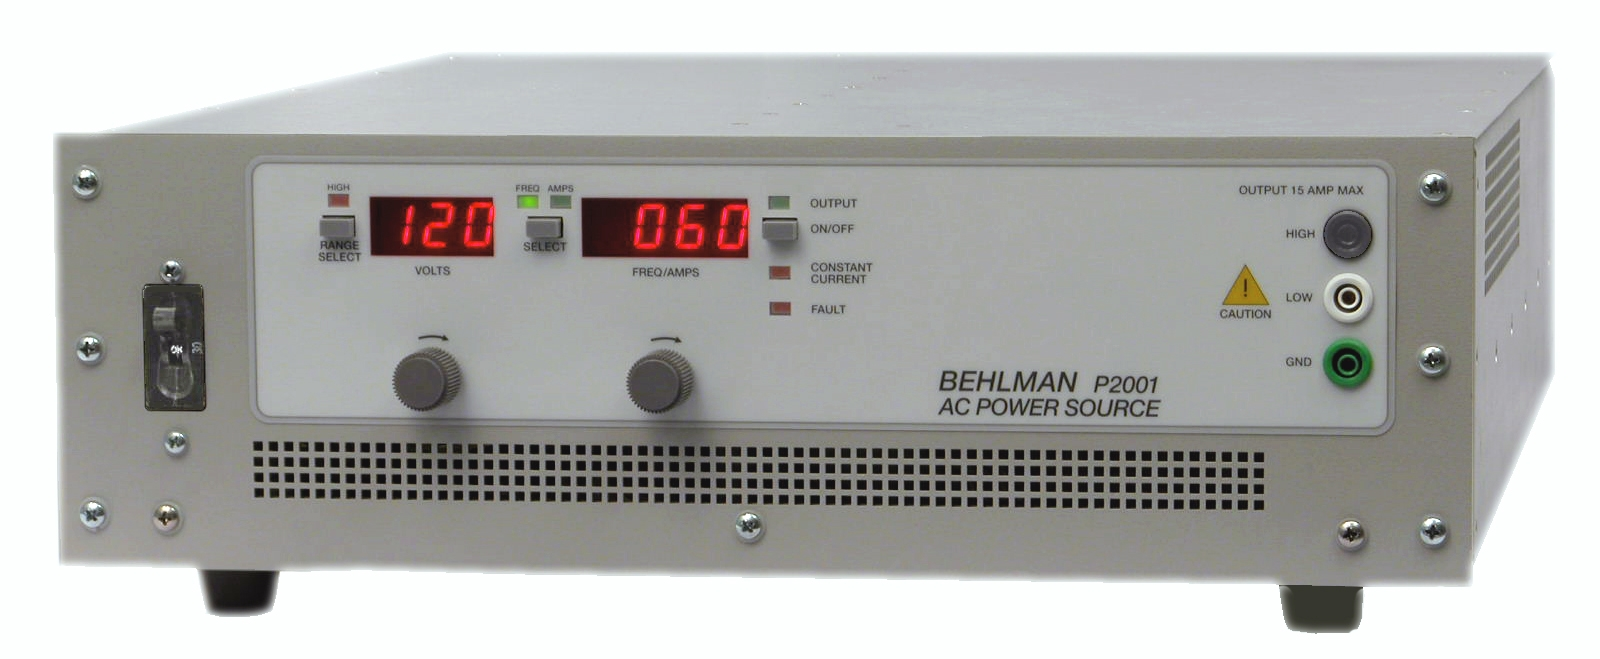 New Behlman 2 Kva Ac Power Source Expands Line Of Low Cost